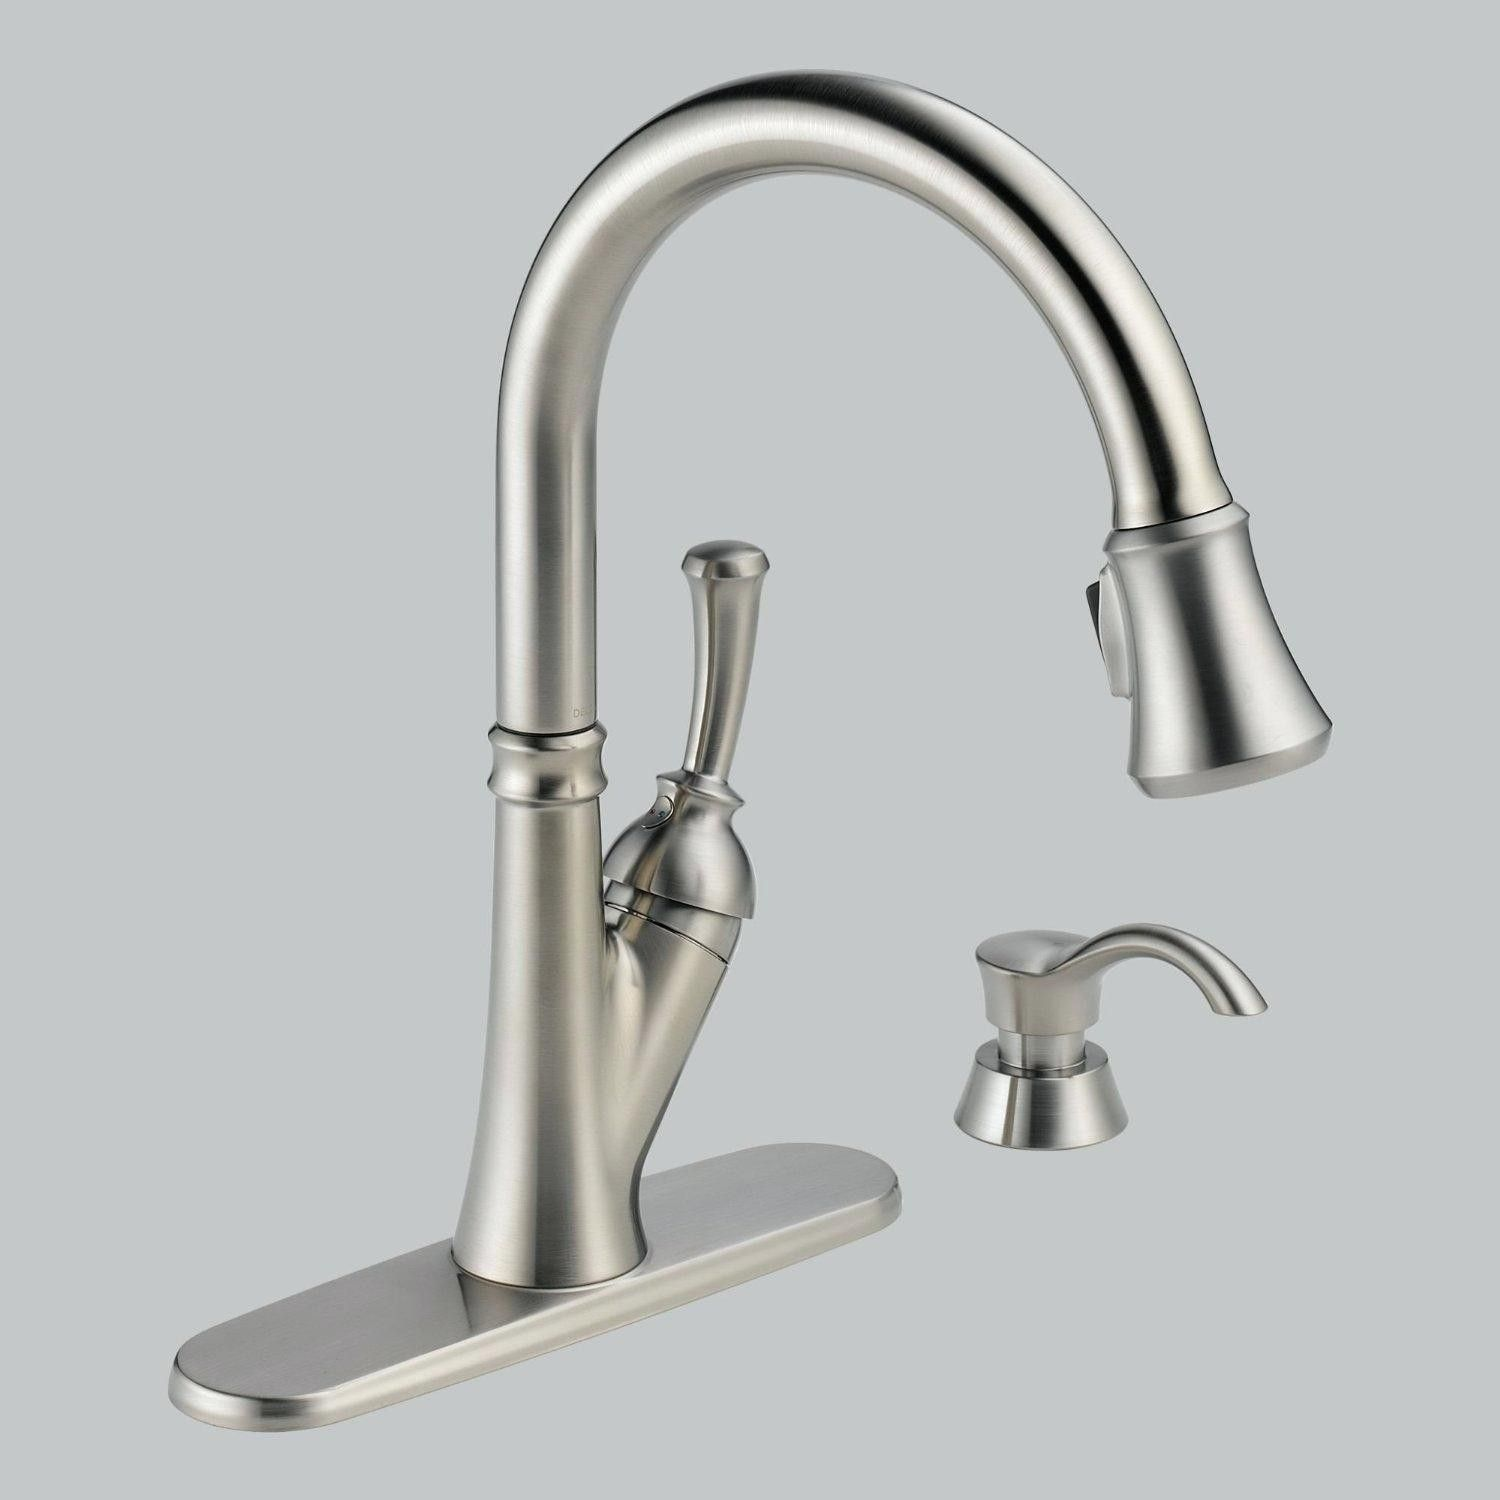 Best Of How To Install A Delta Kitchen Faucet Check More At Https Homefurnitureone Com Best Of How To Install A Delta Kitchen Faucet